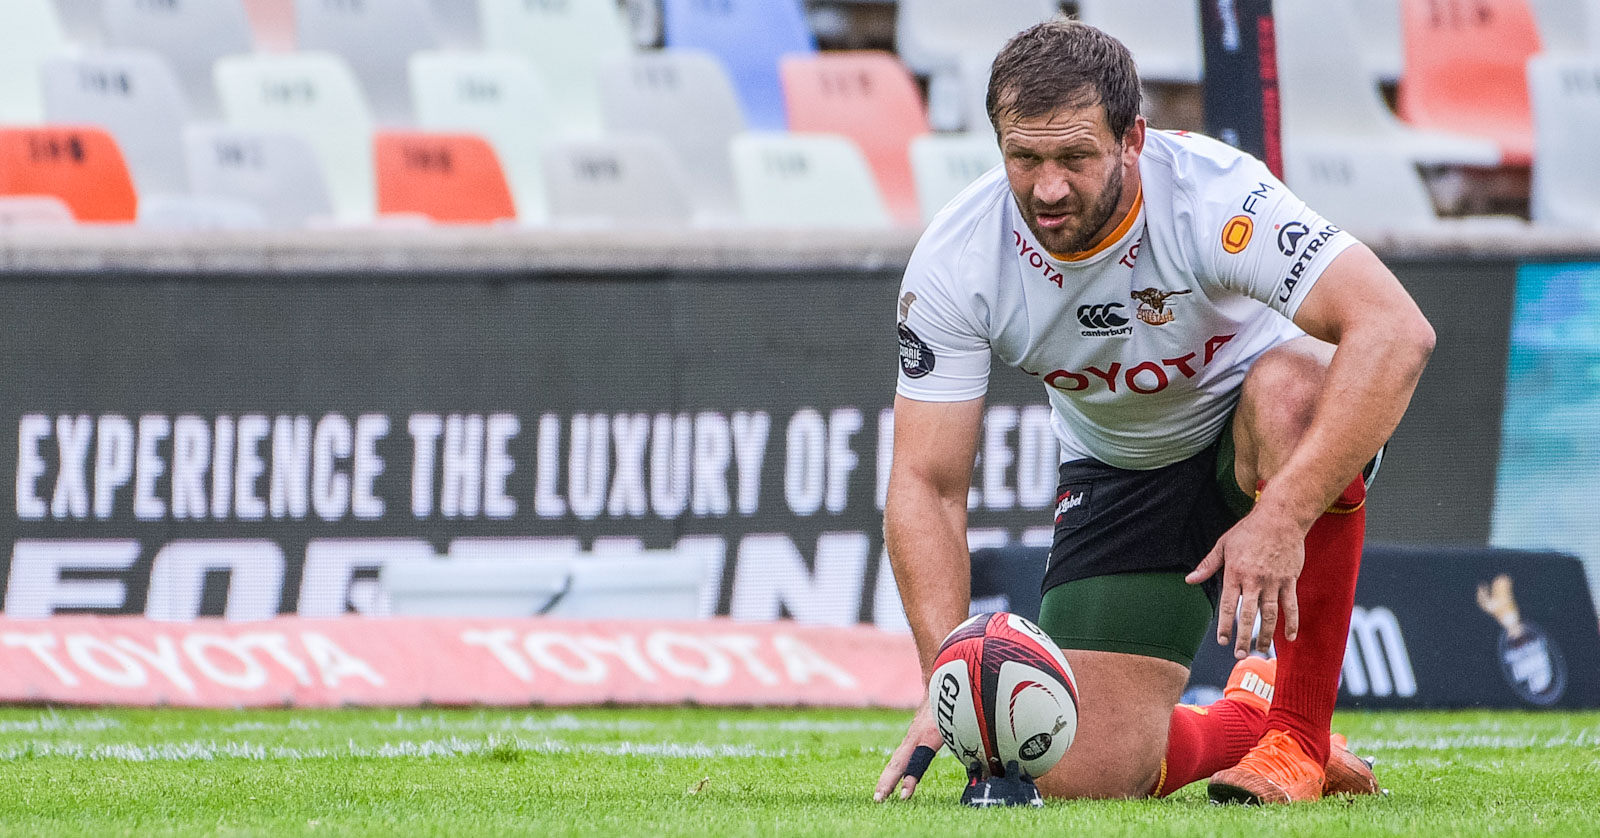 Frans Steyn kicked 19 points for the Toyota Cheetahs